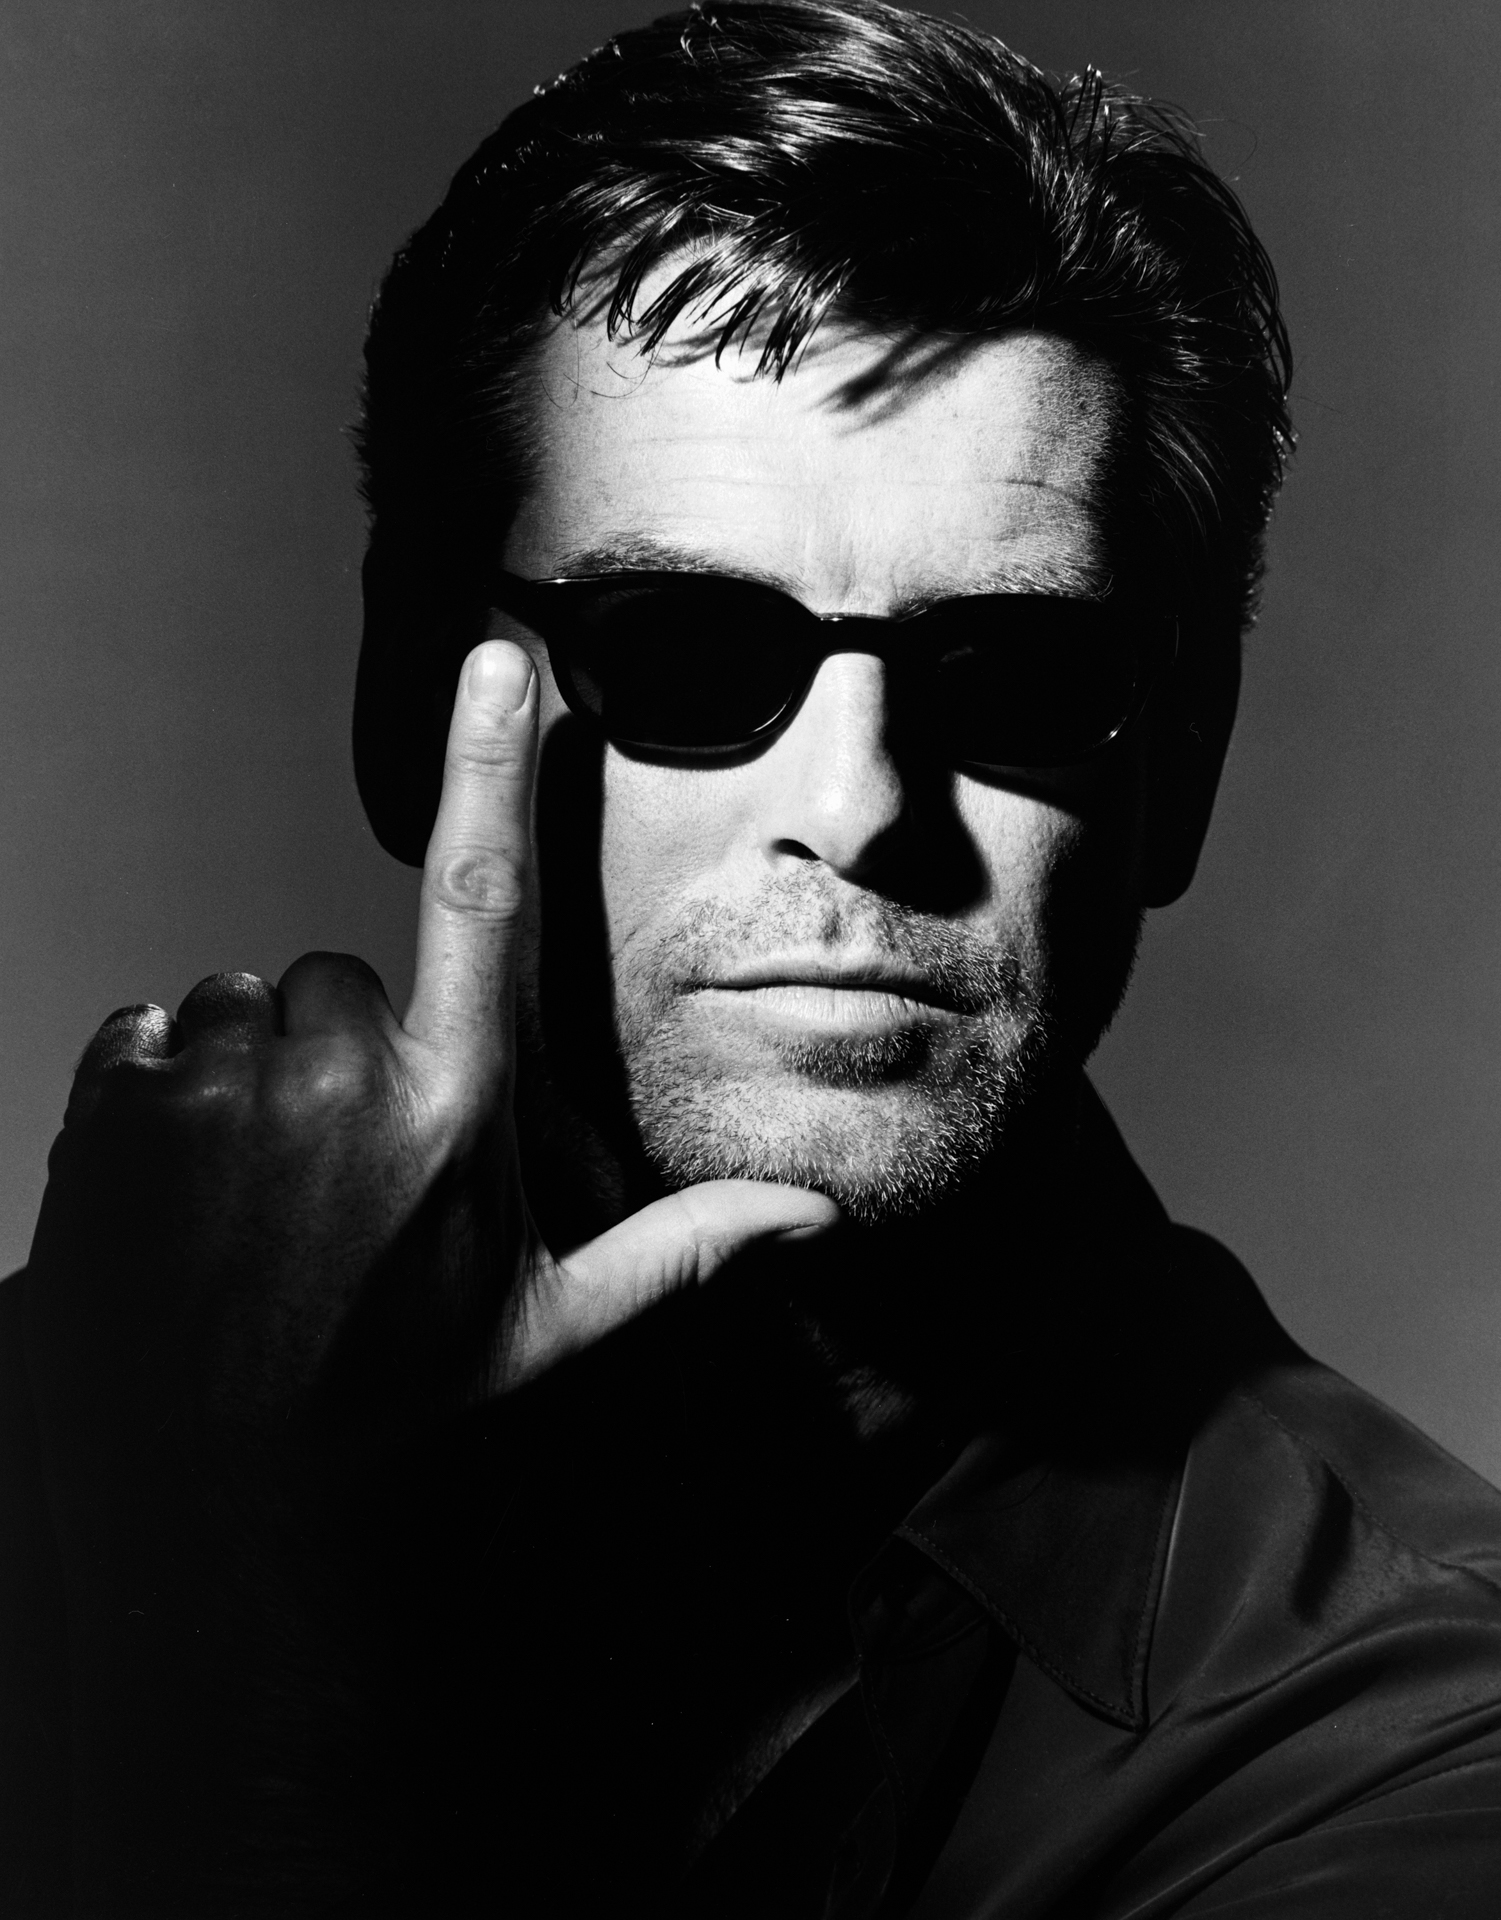 Pierce_Brosnan.tif